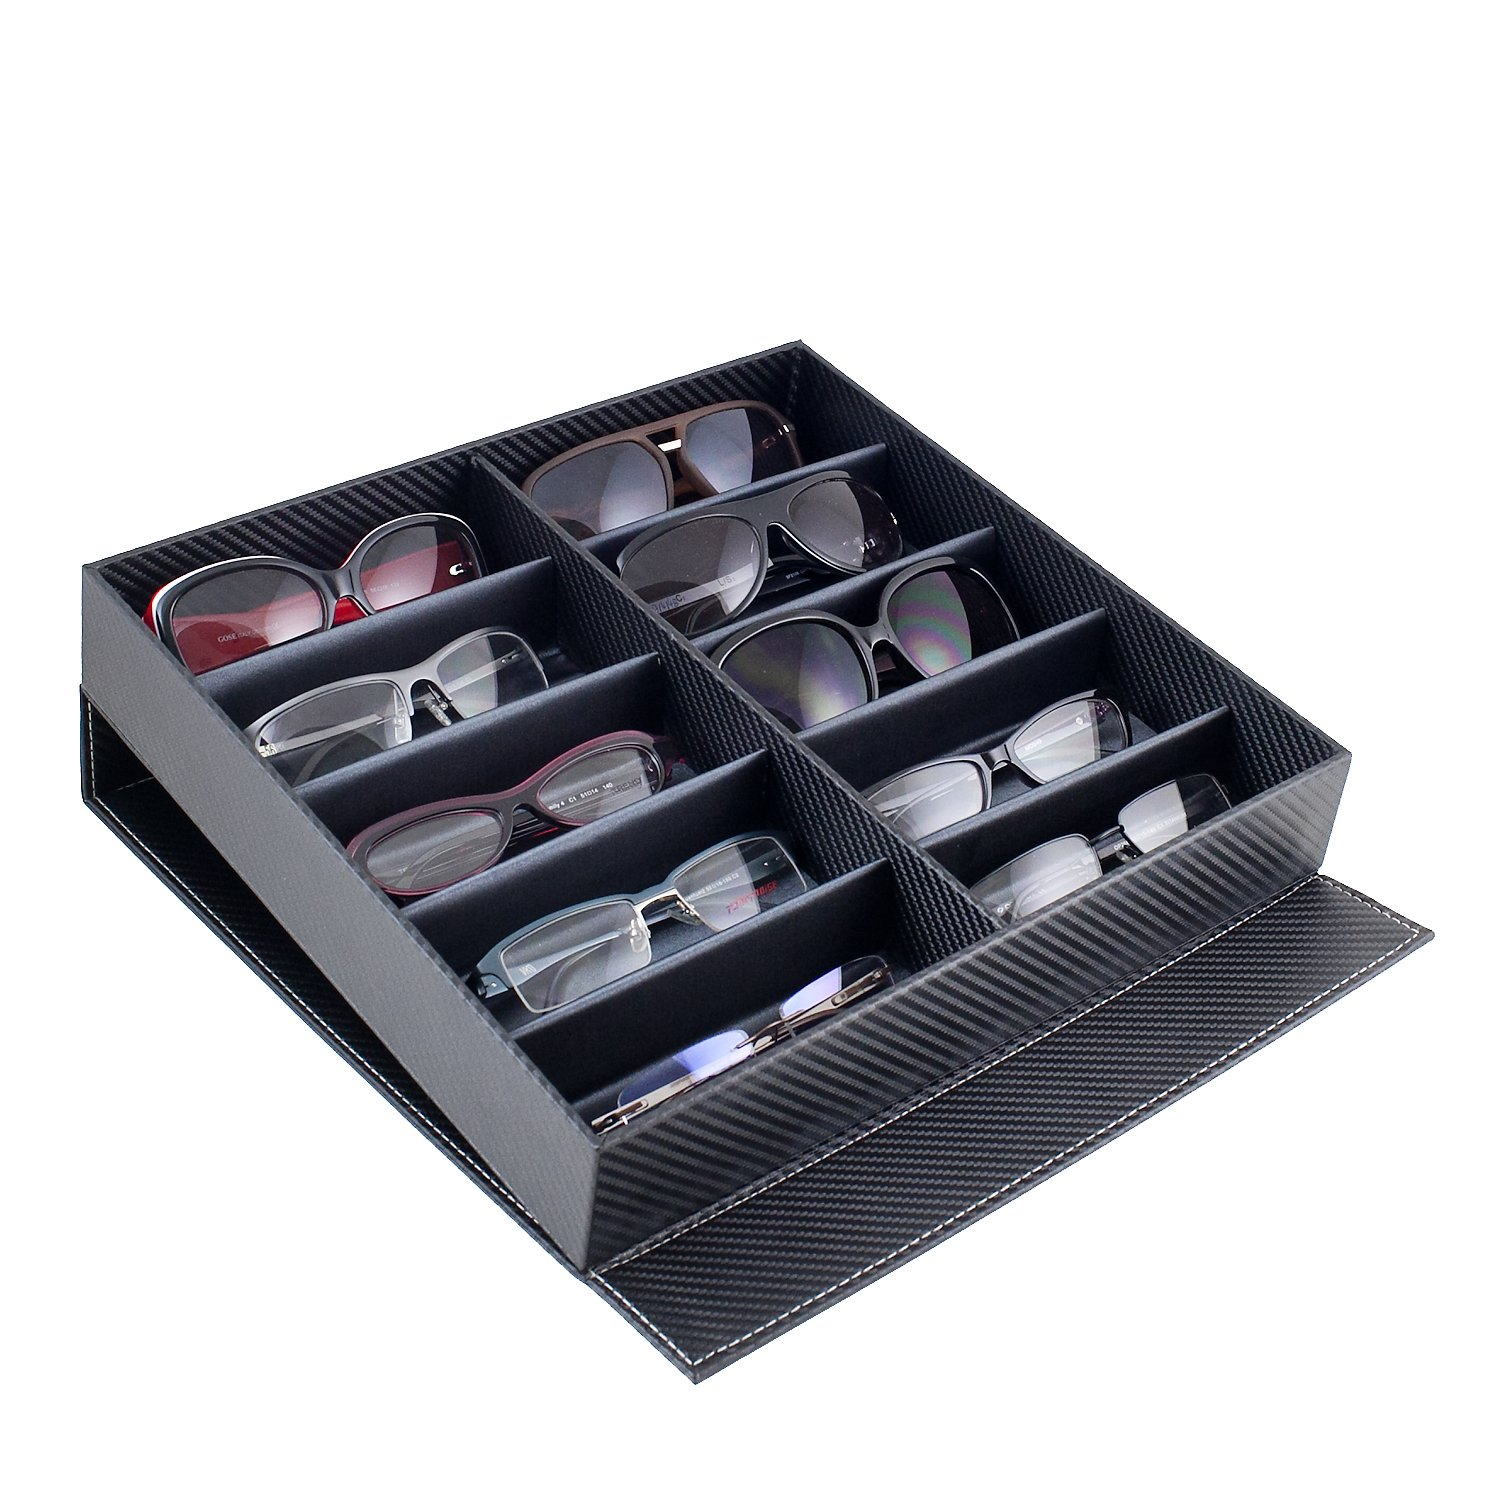 Amazon.com: Caddy Bay Collection Carbon Fiber Pattern Large Sunglasses Case  Display Storage Watch Box With 10 Slots: Watches